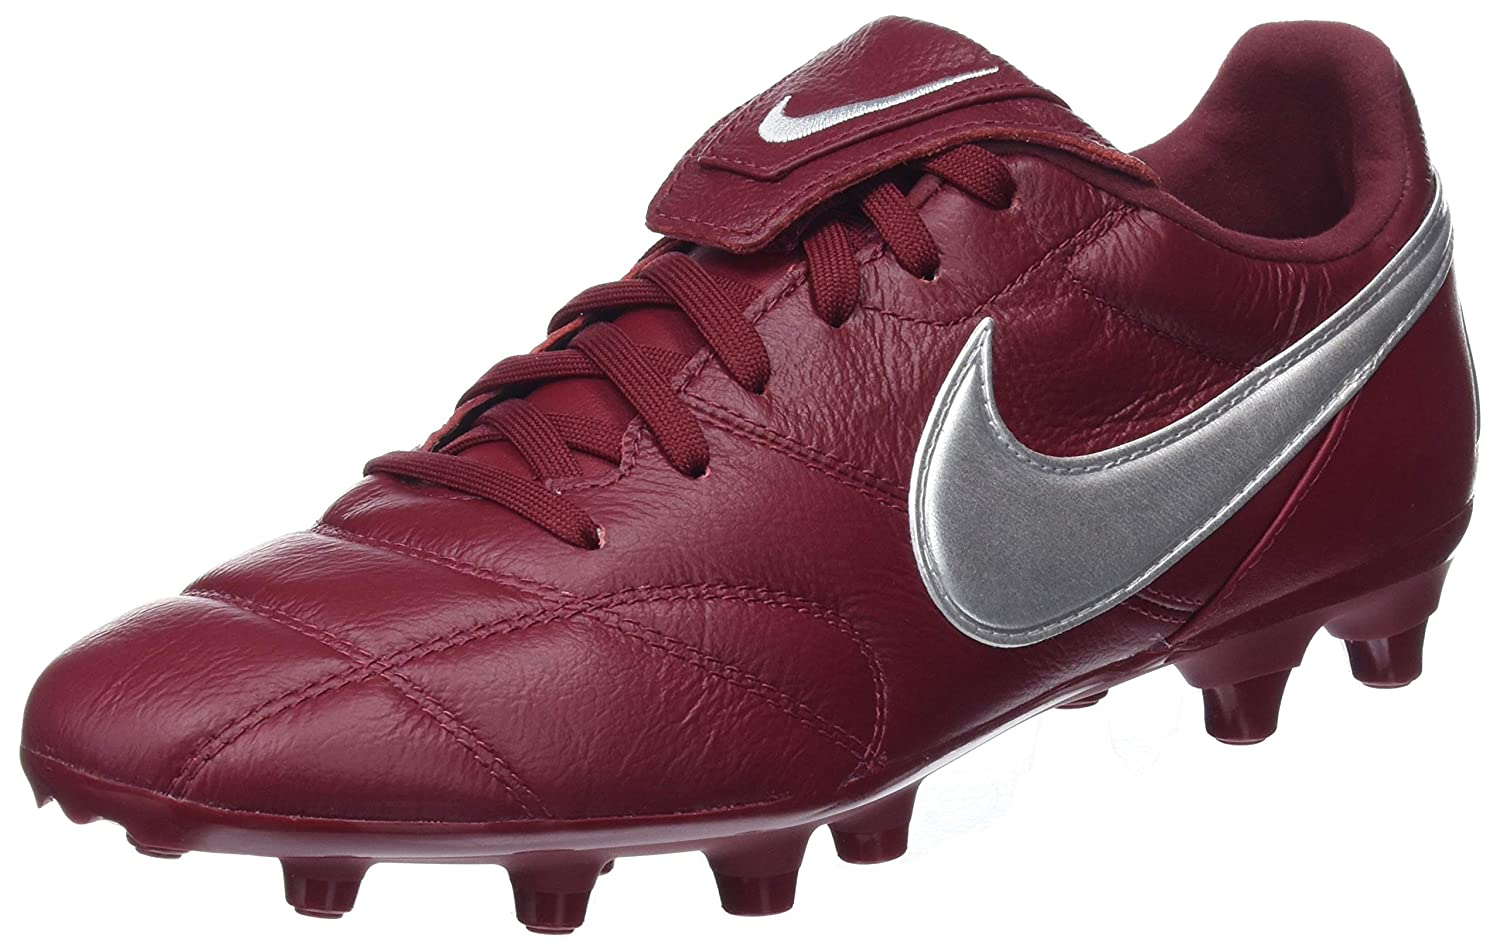 NIKE The Premier II Fg, Scarpe da Calcetto Indoor Uomo Metallic Silver/Team Red 606 38.5 EU 917803